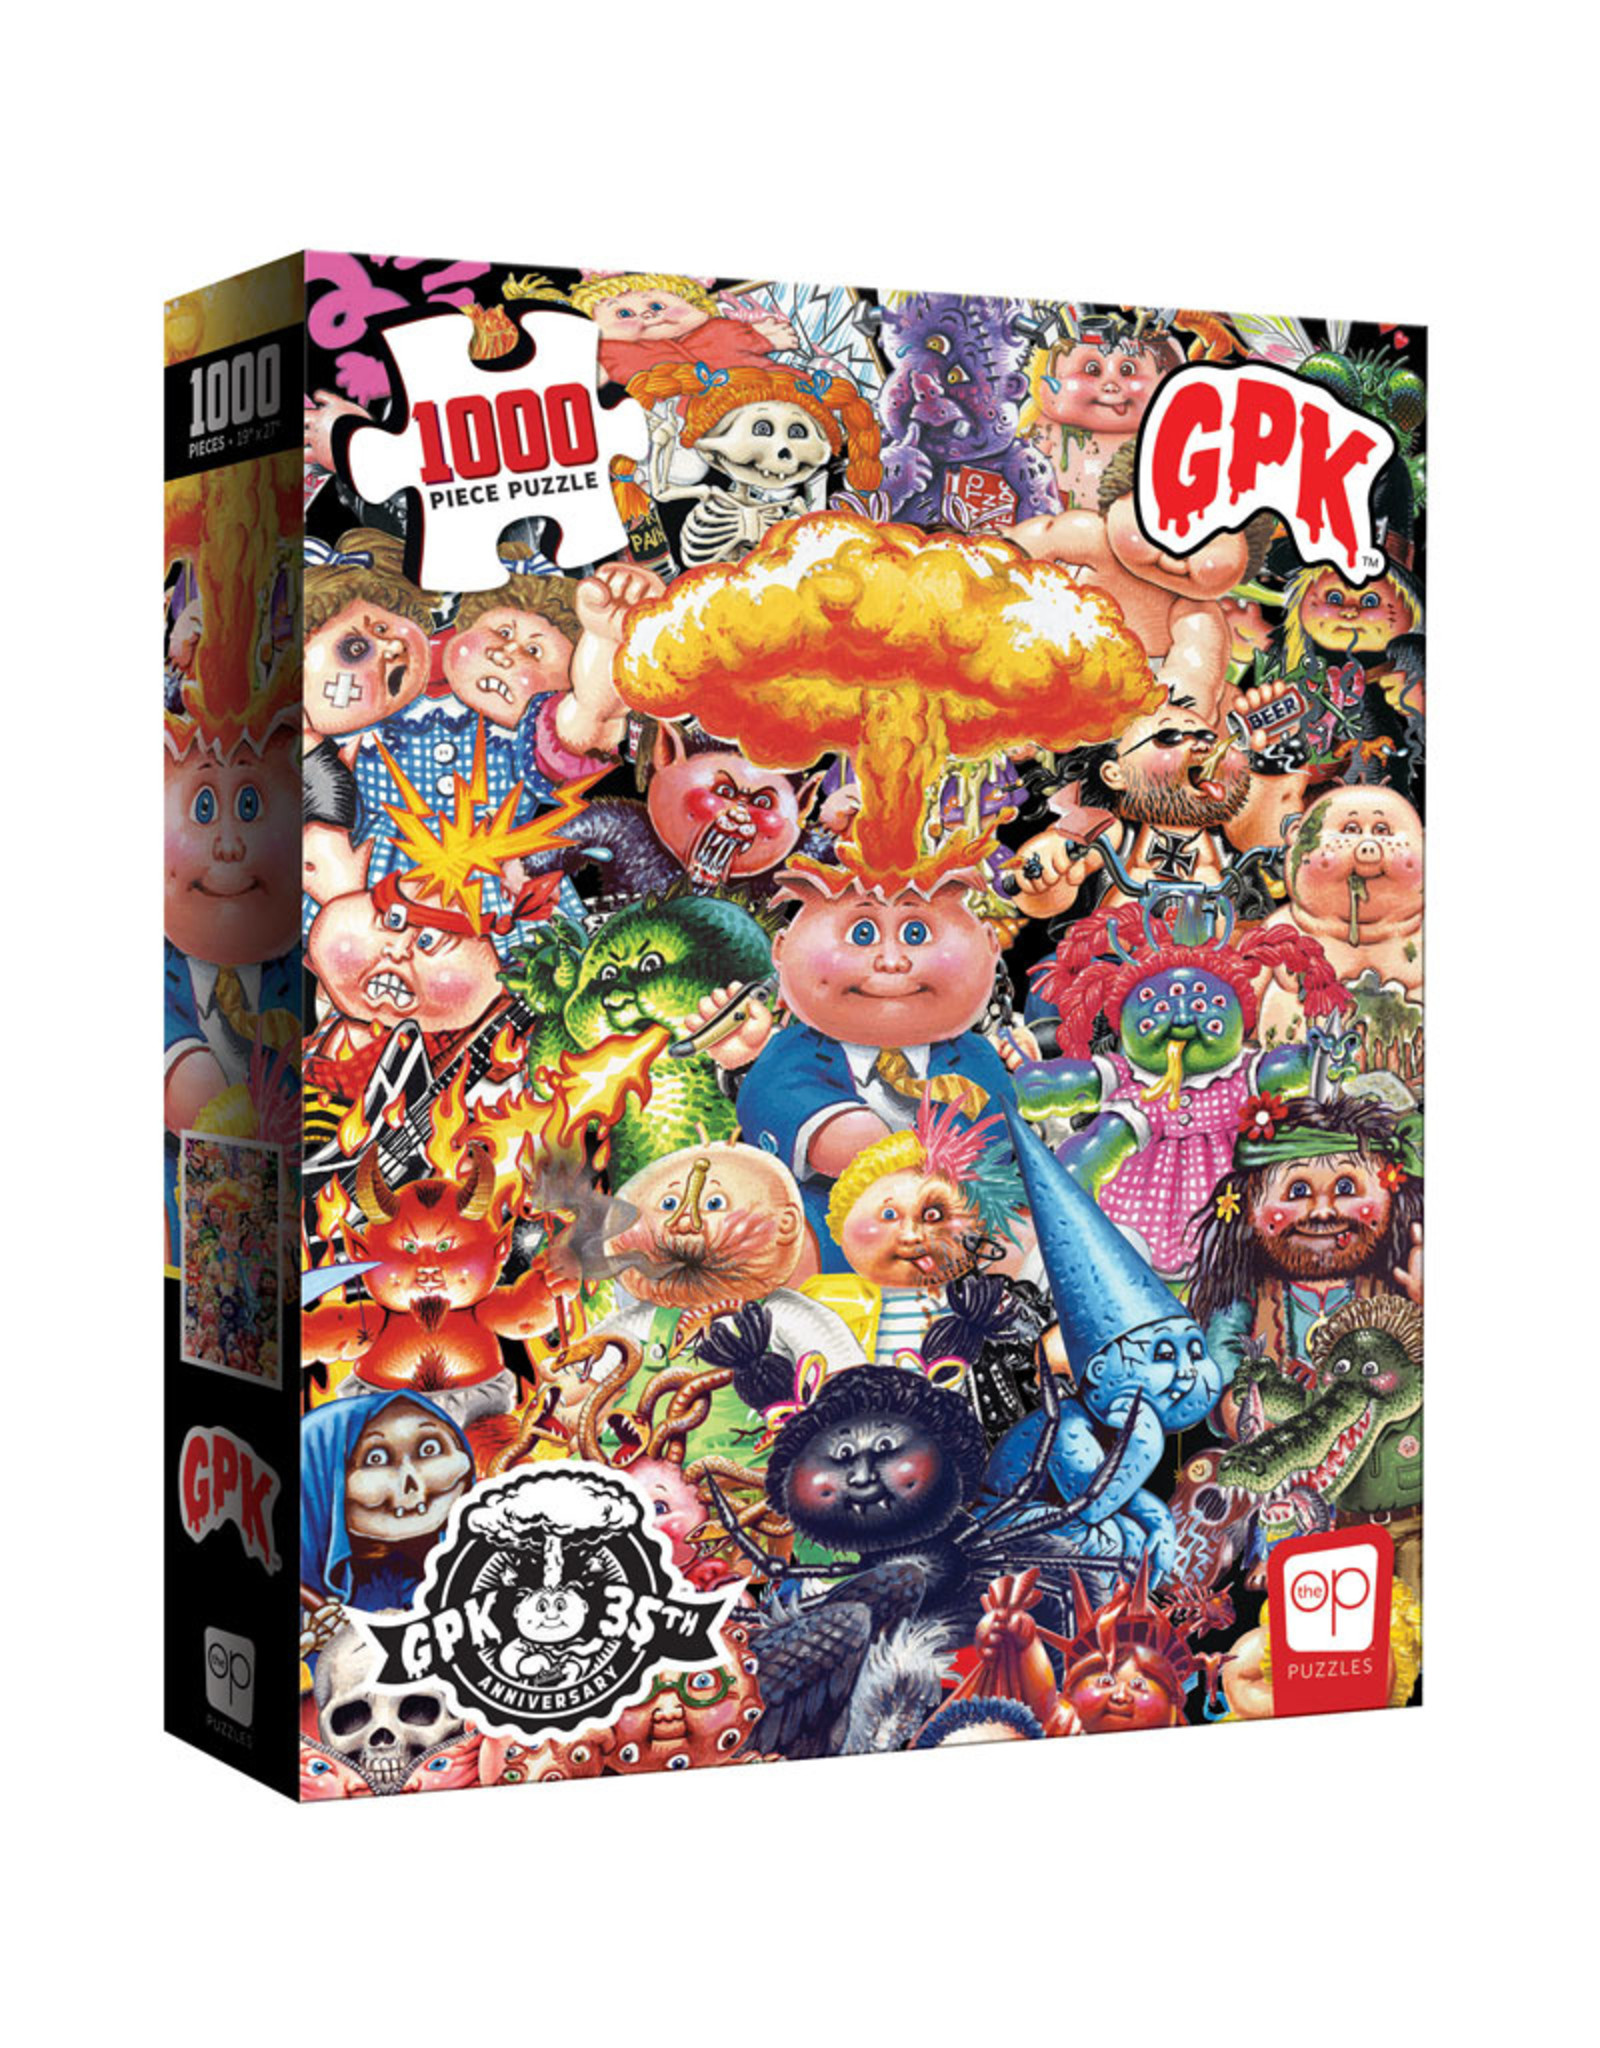 USAopoly Puzzle: Garbage Pail Kids 1000 pc